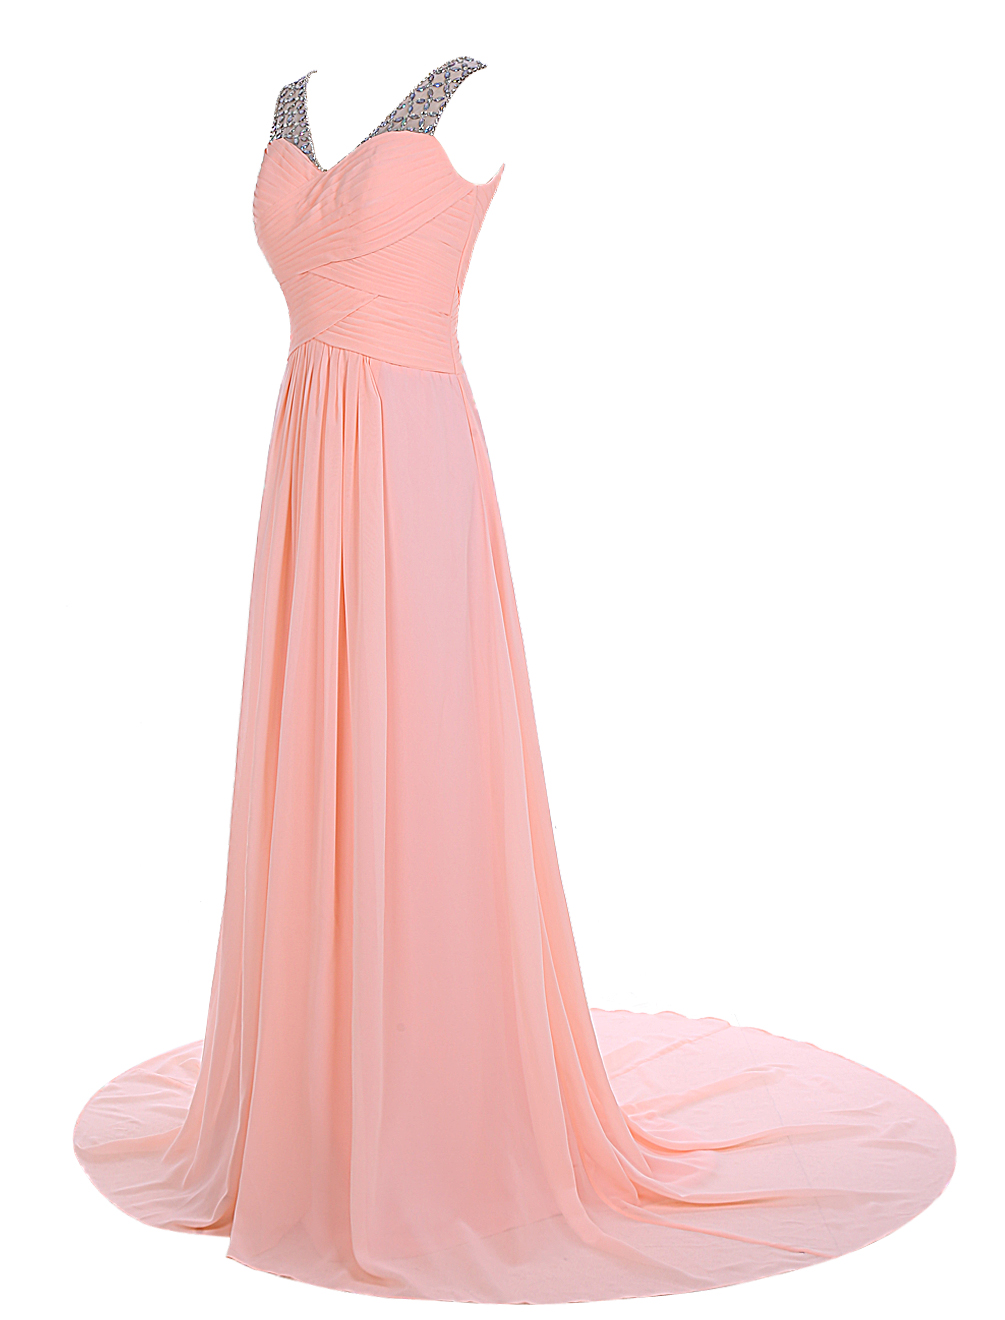 Simple-dress / Elegant A-line Sweep Train V-neck Chiffon Beading Pink Prom Dress Evening Gowns